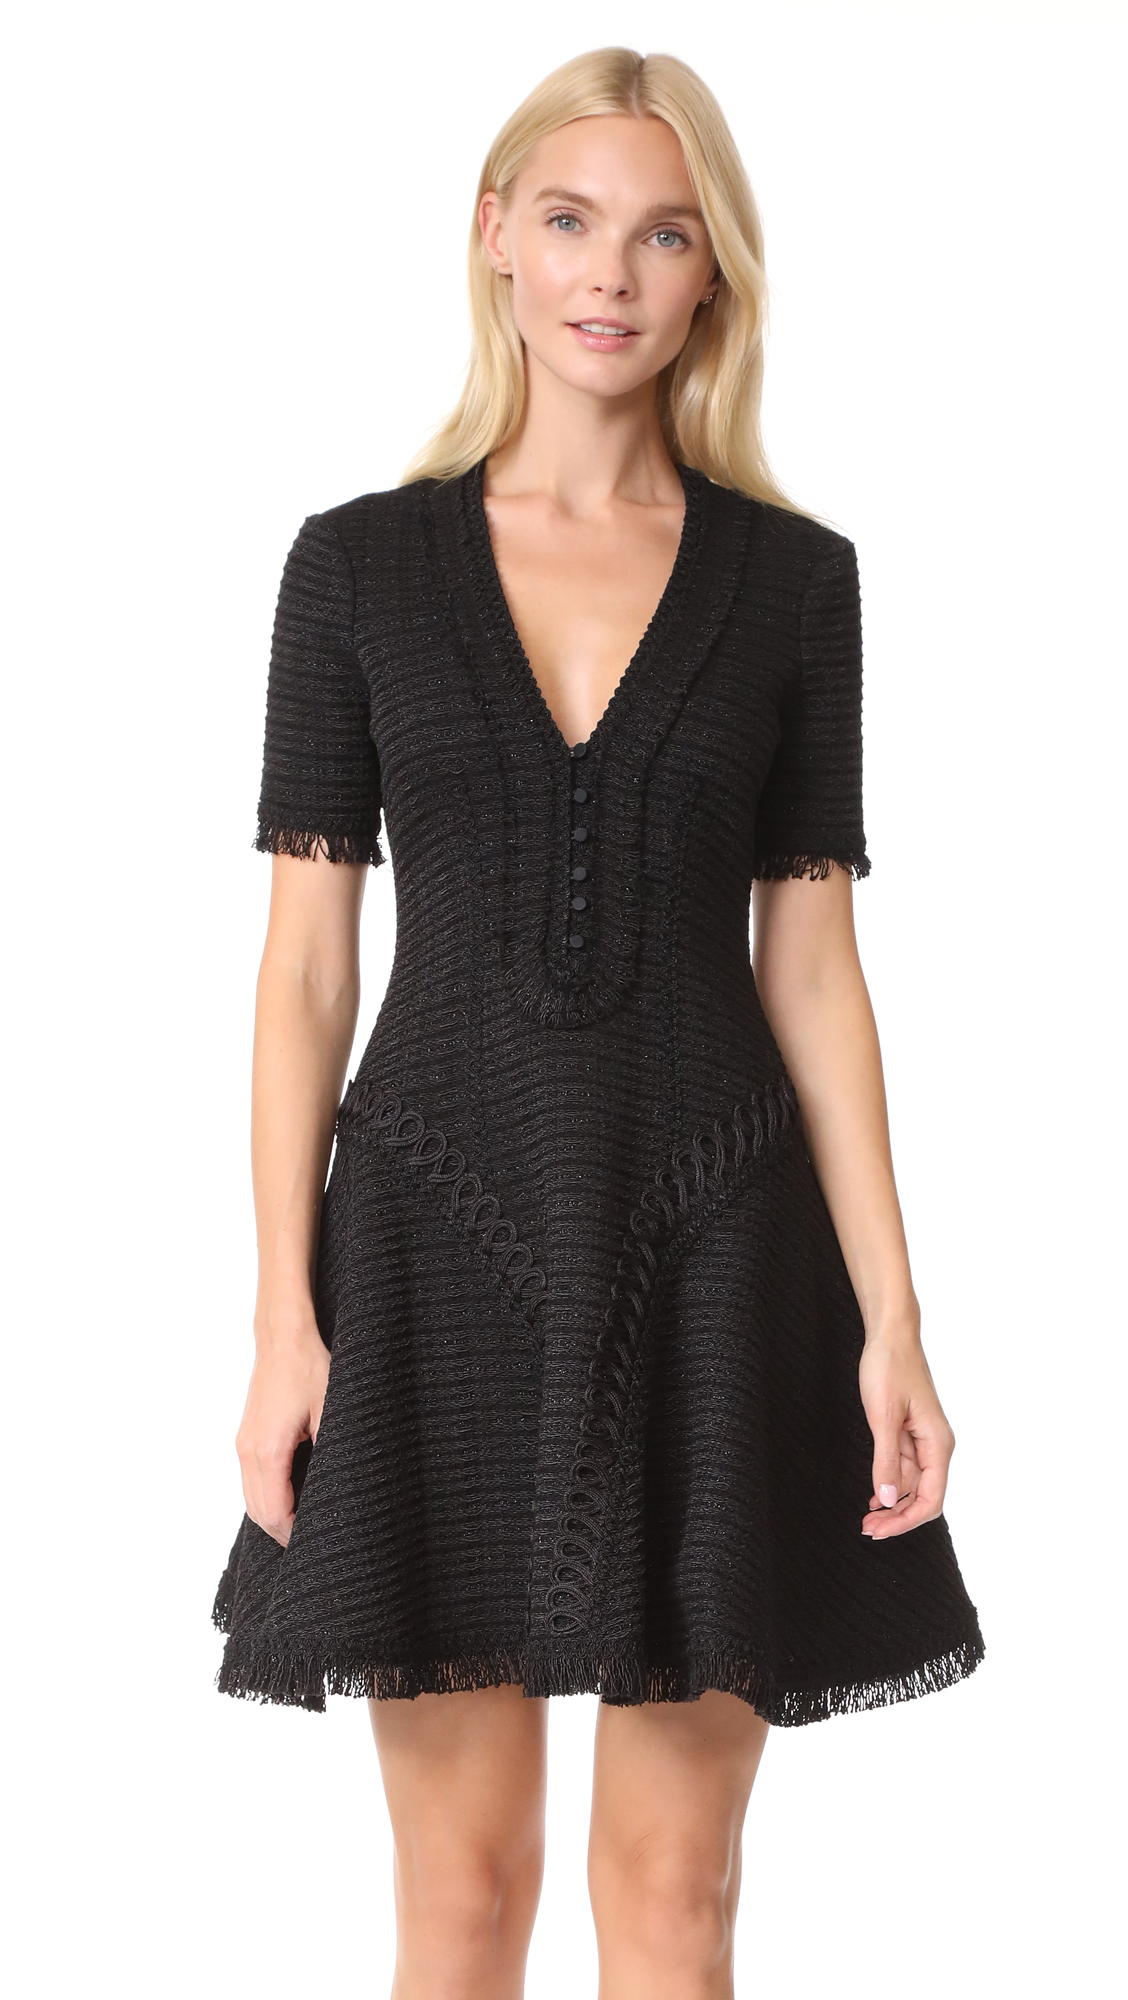 Jonathan Simkhai Polished Tweed Corded Dress - Black